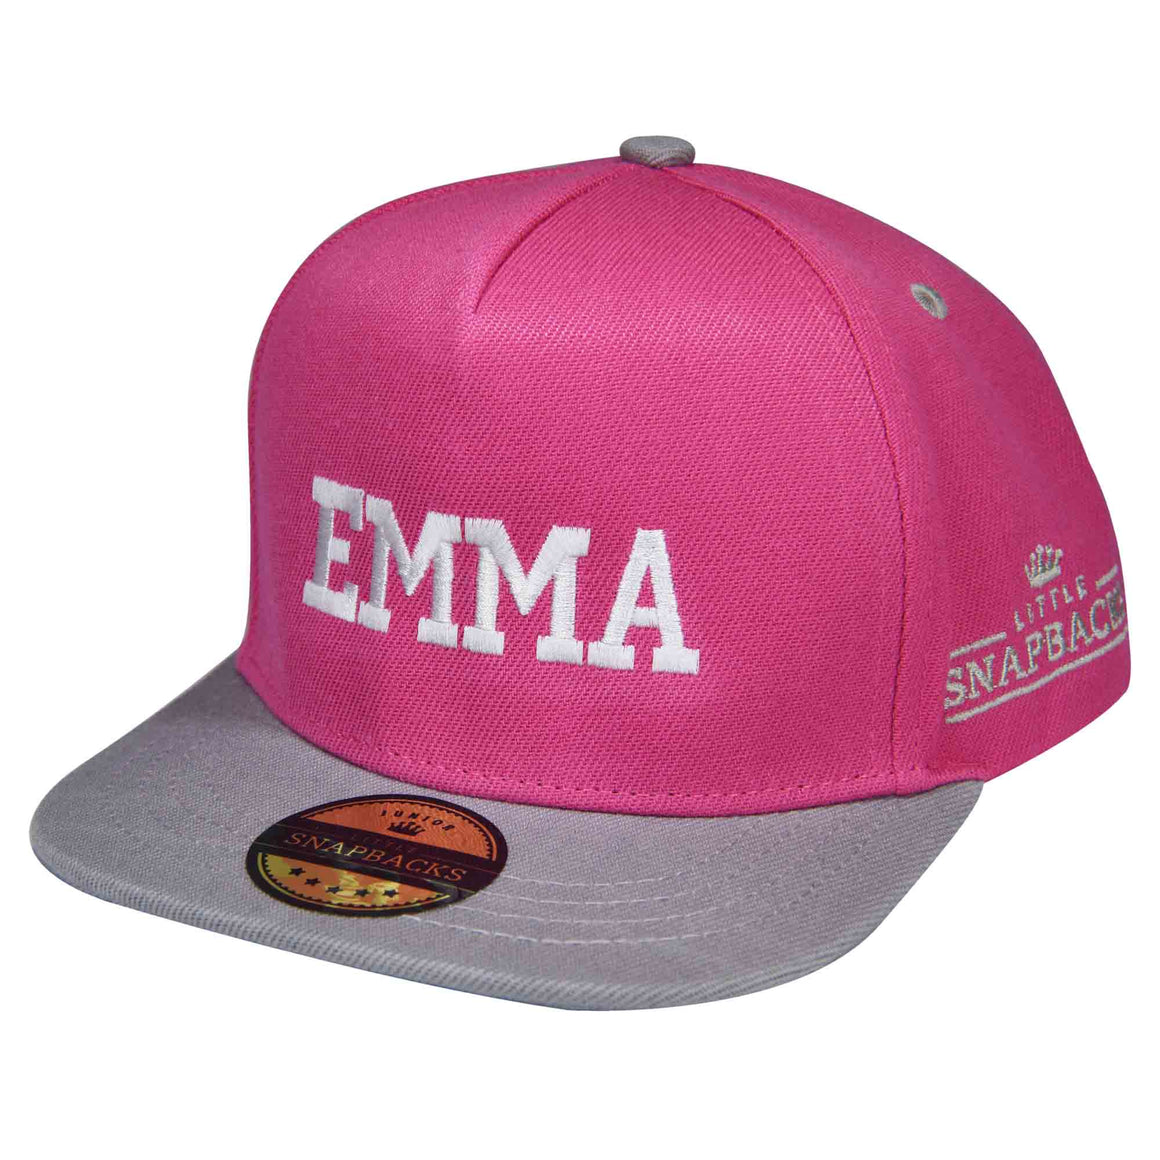 Little Snapbacks Personalised Kids Hats - Hot Pink & Grey Snapback